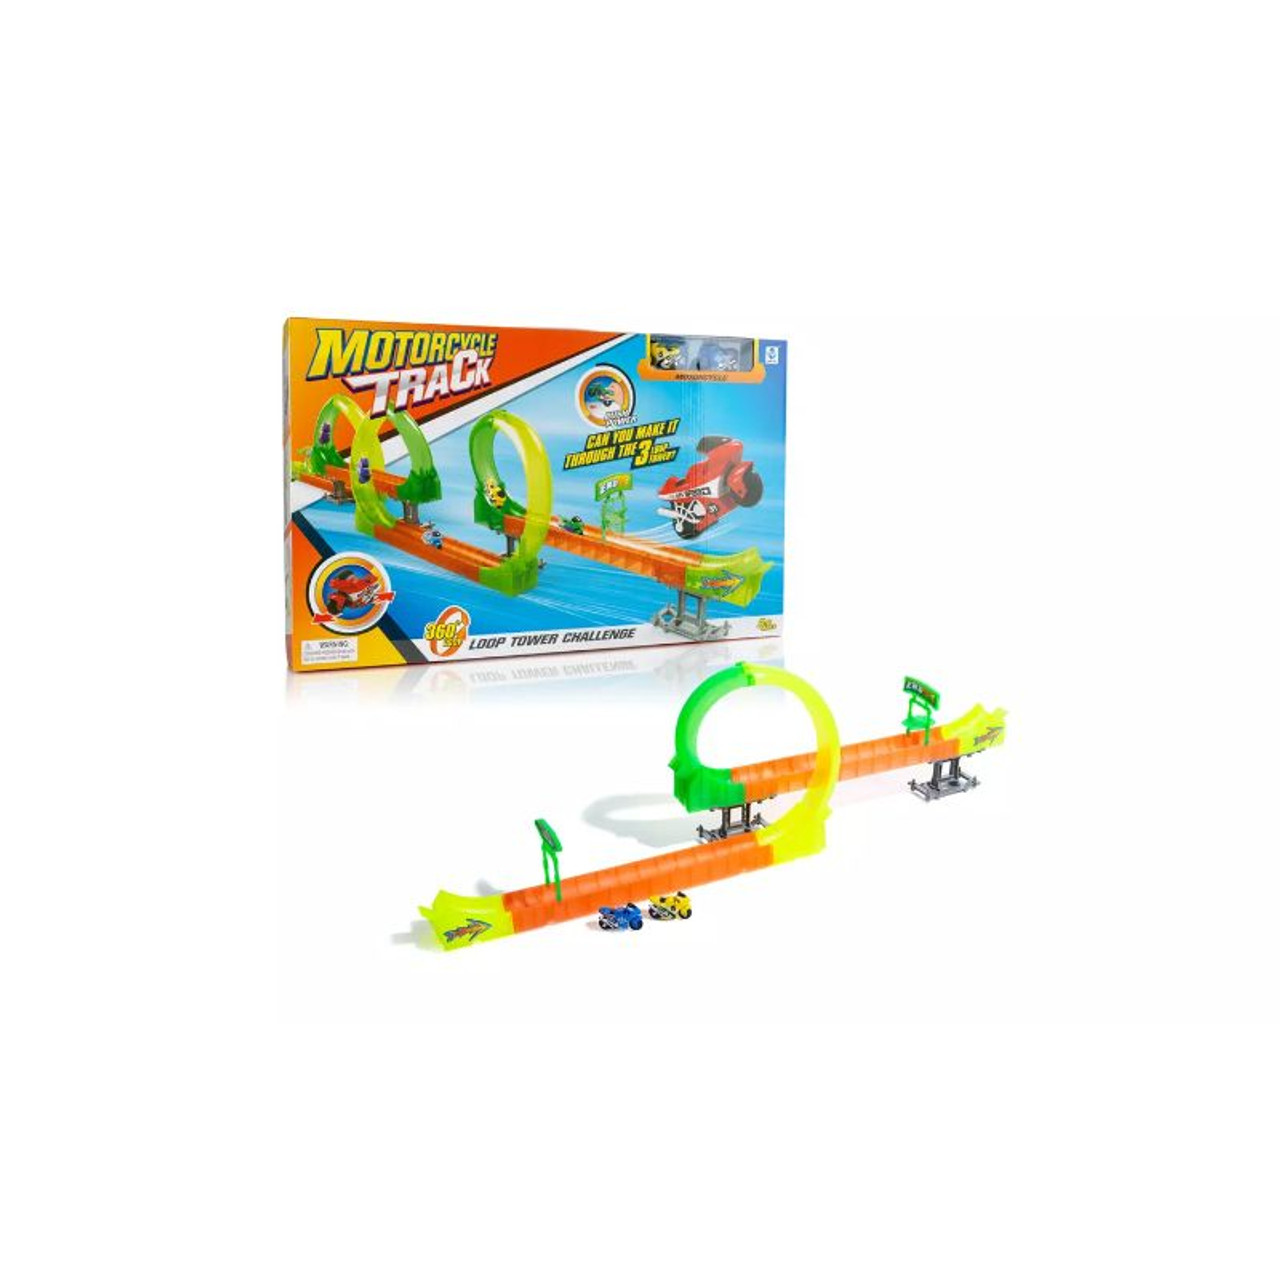 Kid's Playsets and Games